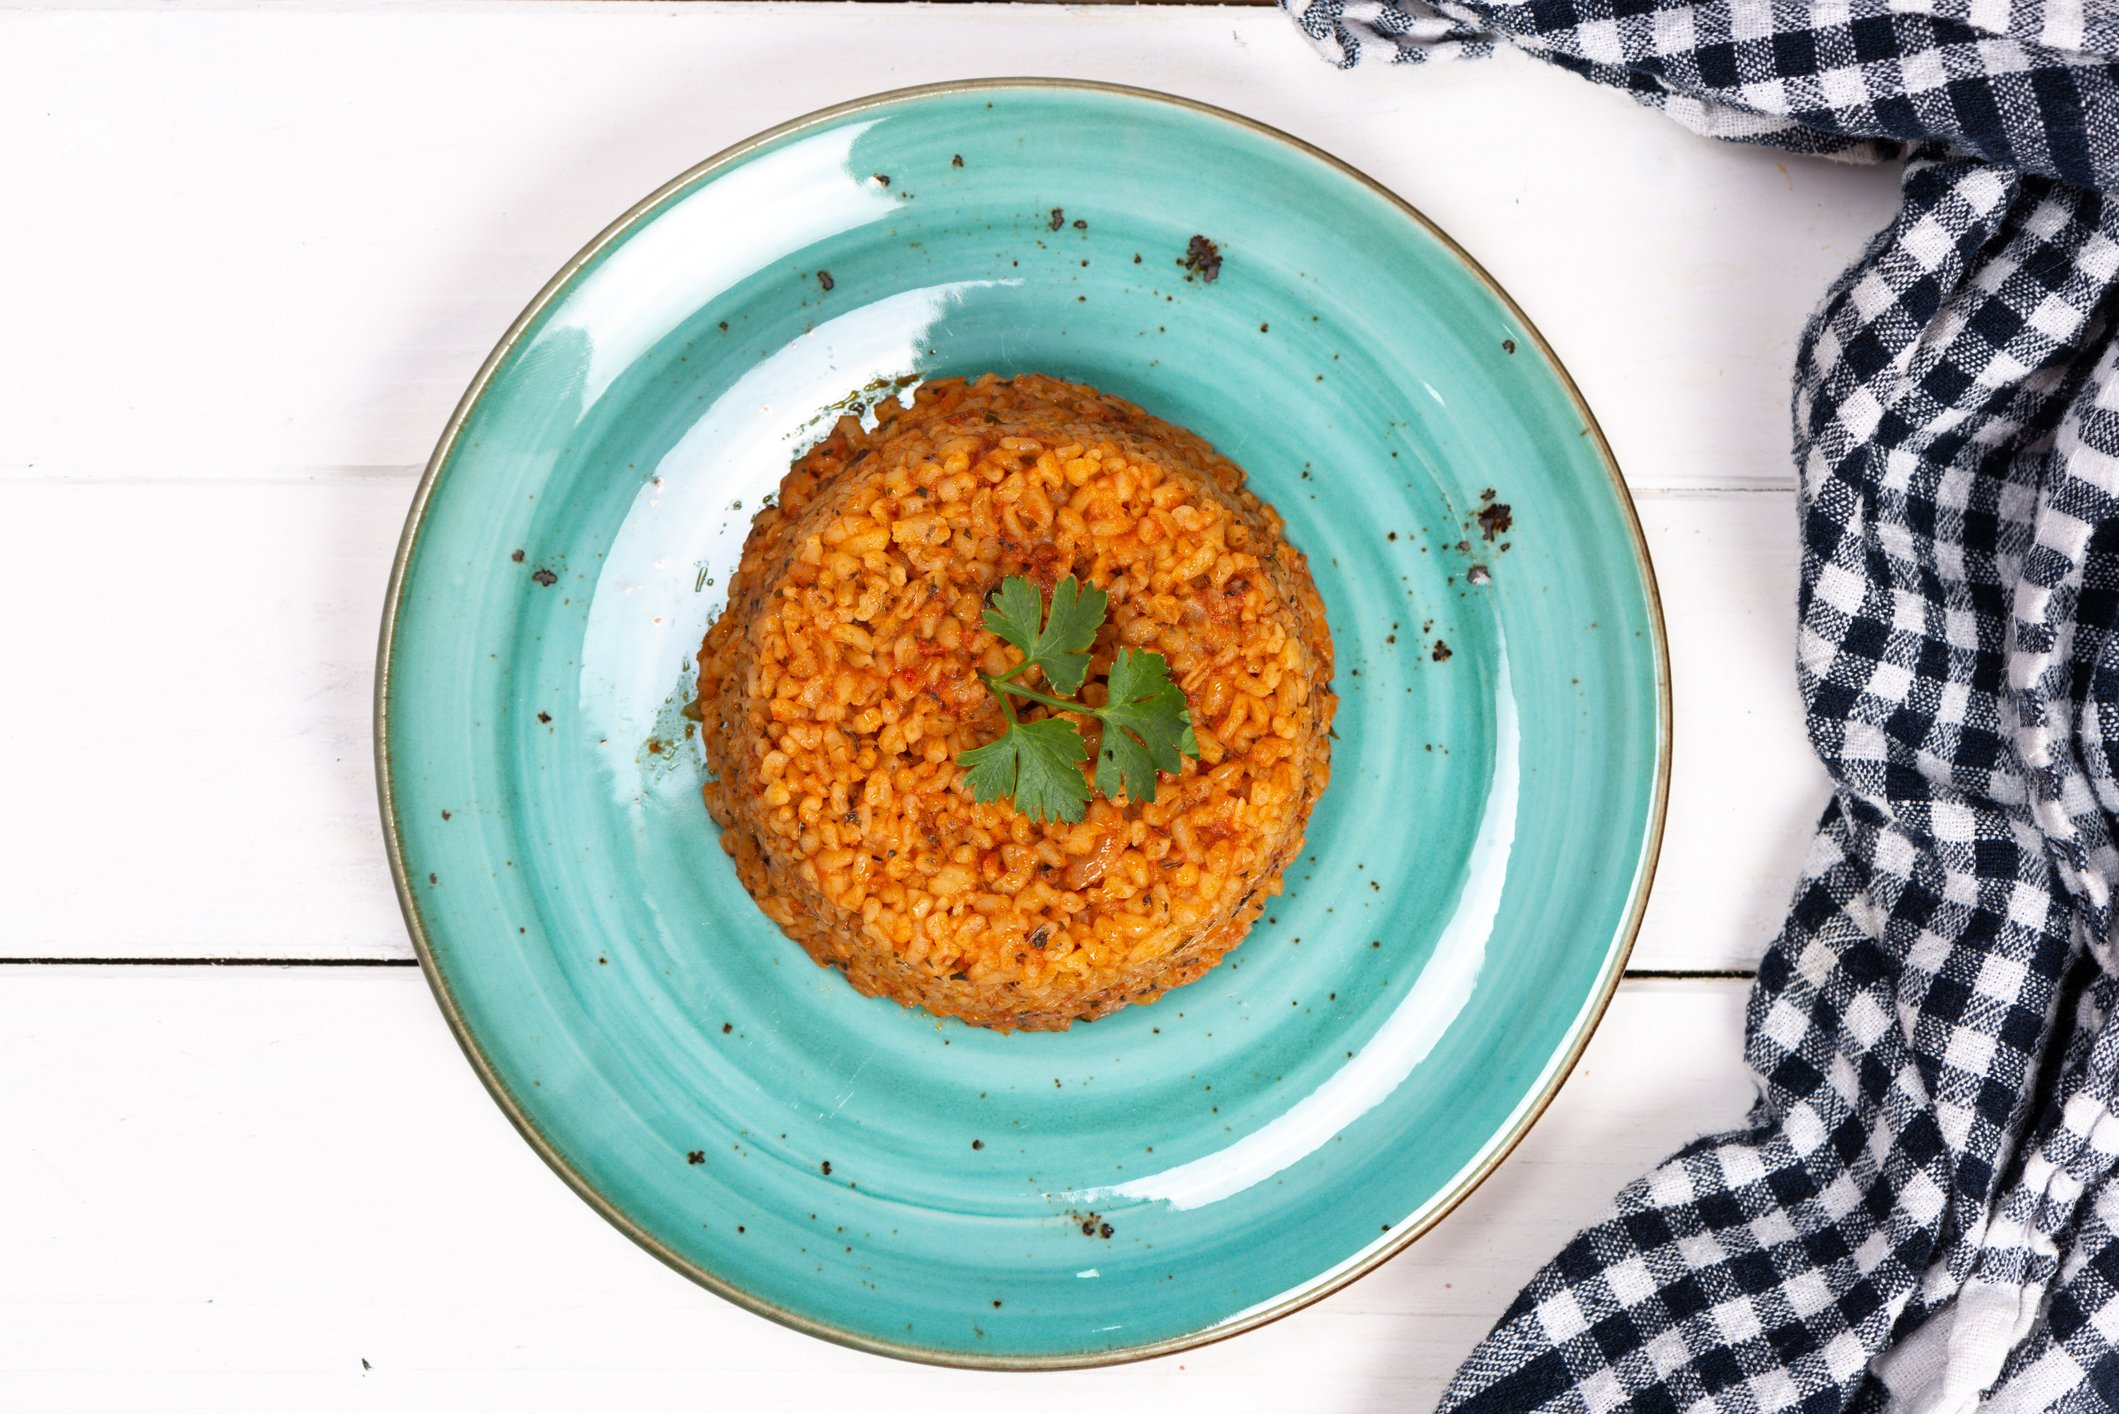 Depending on the amount of tomato paste you use, your bulgur may look more red. (iStock Photo)